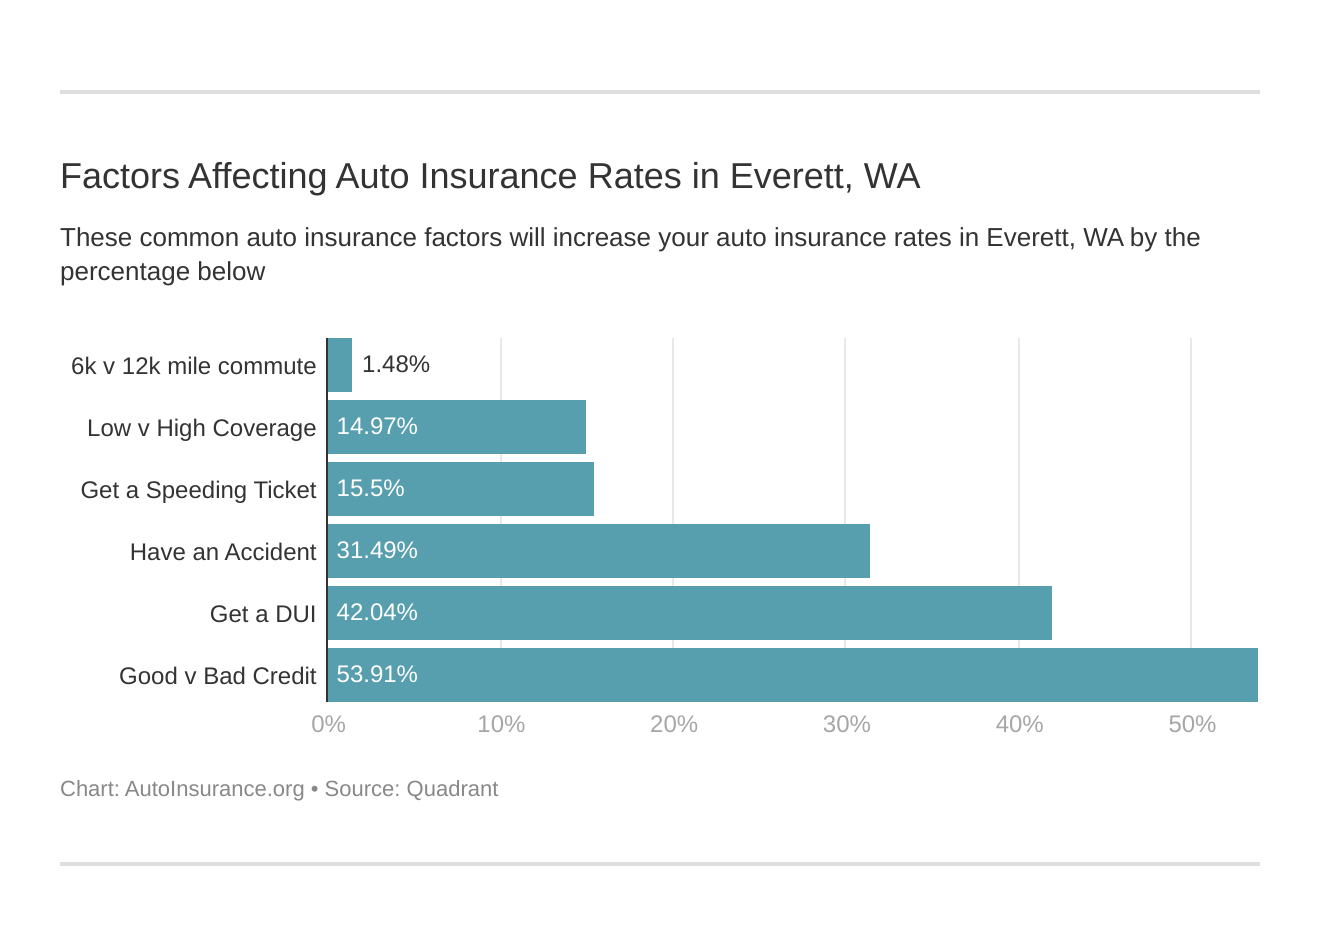 Factors Affecting Auto Insurance Rates in Everett, WA